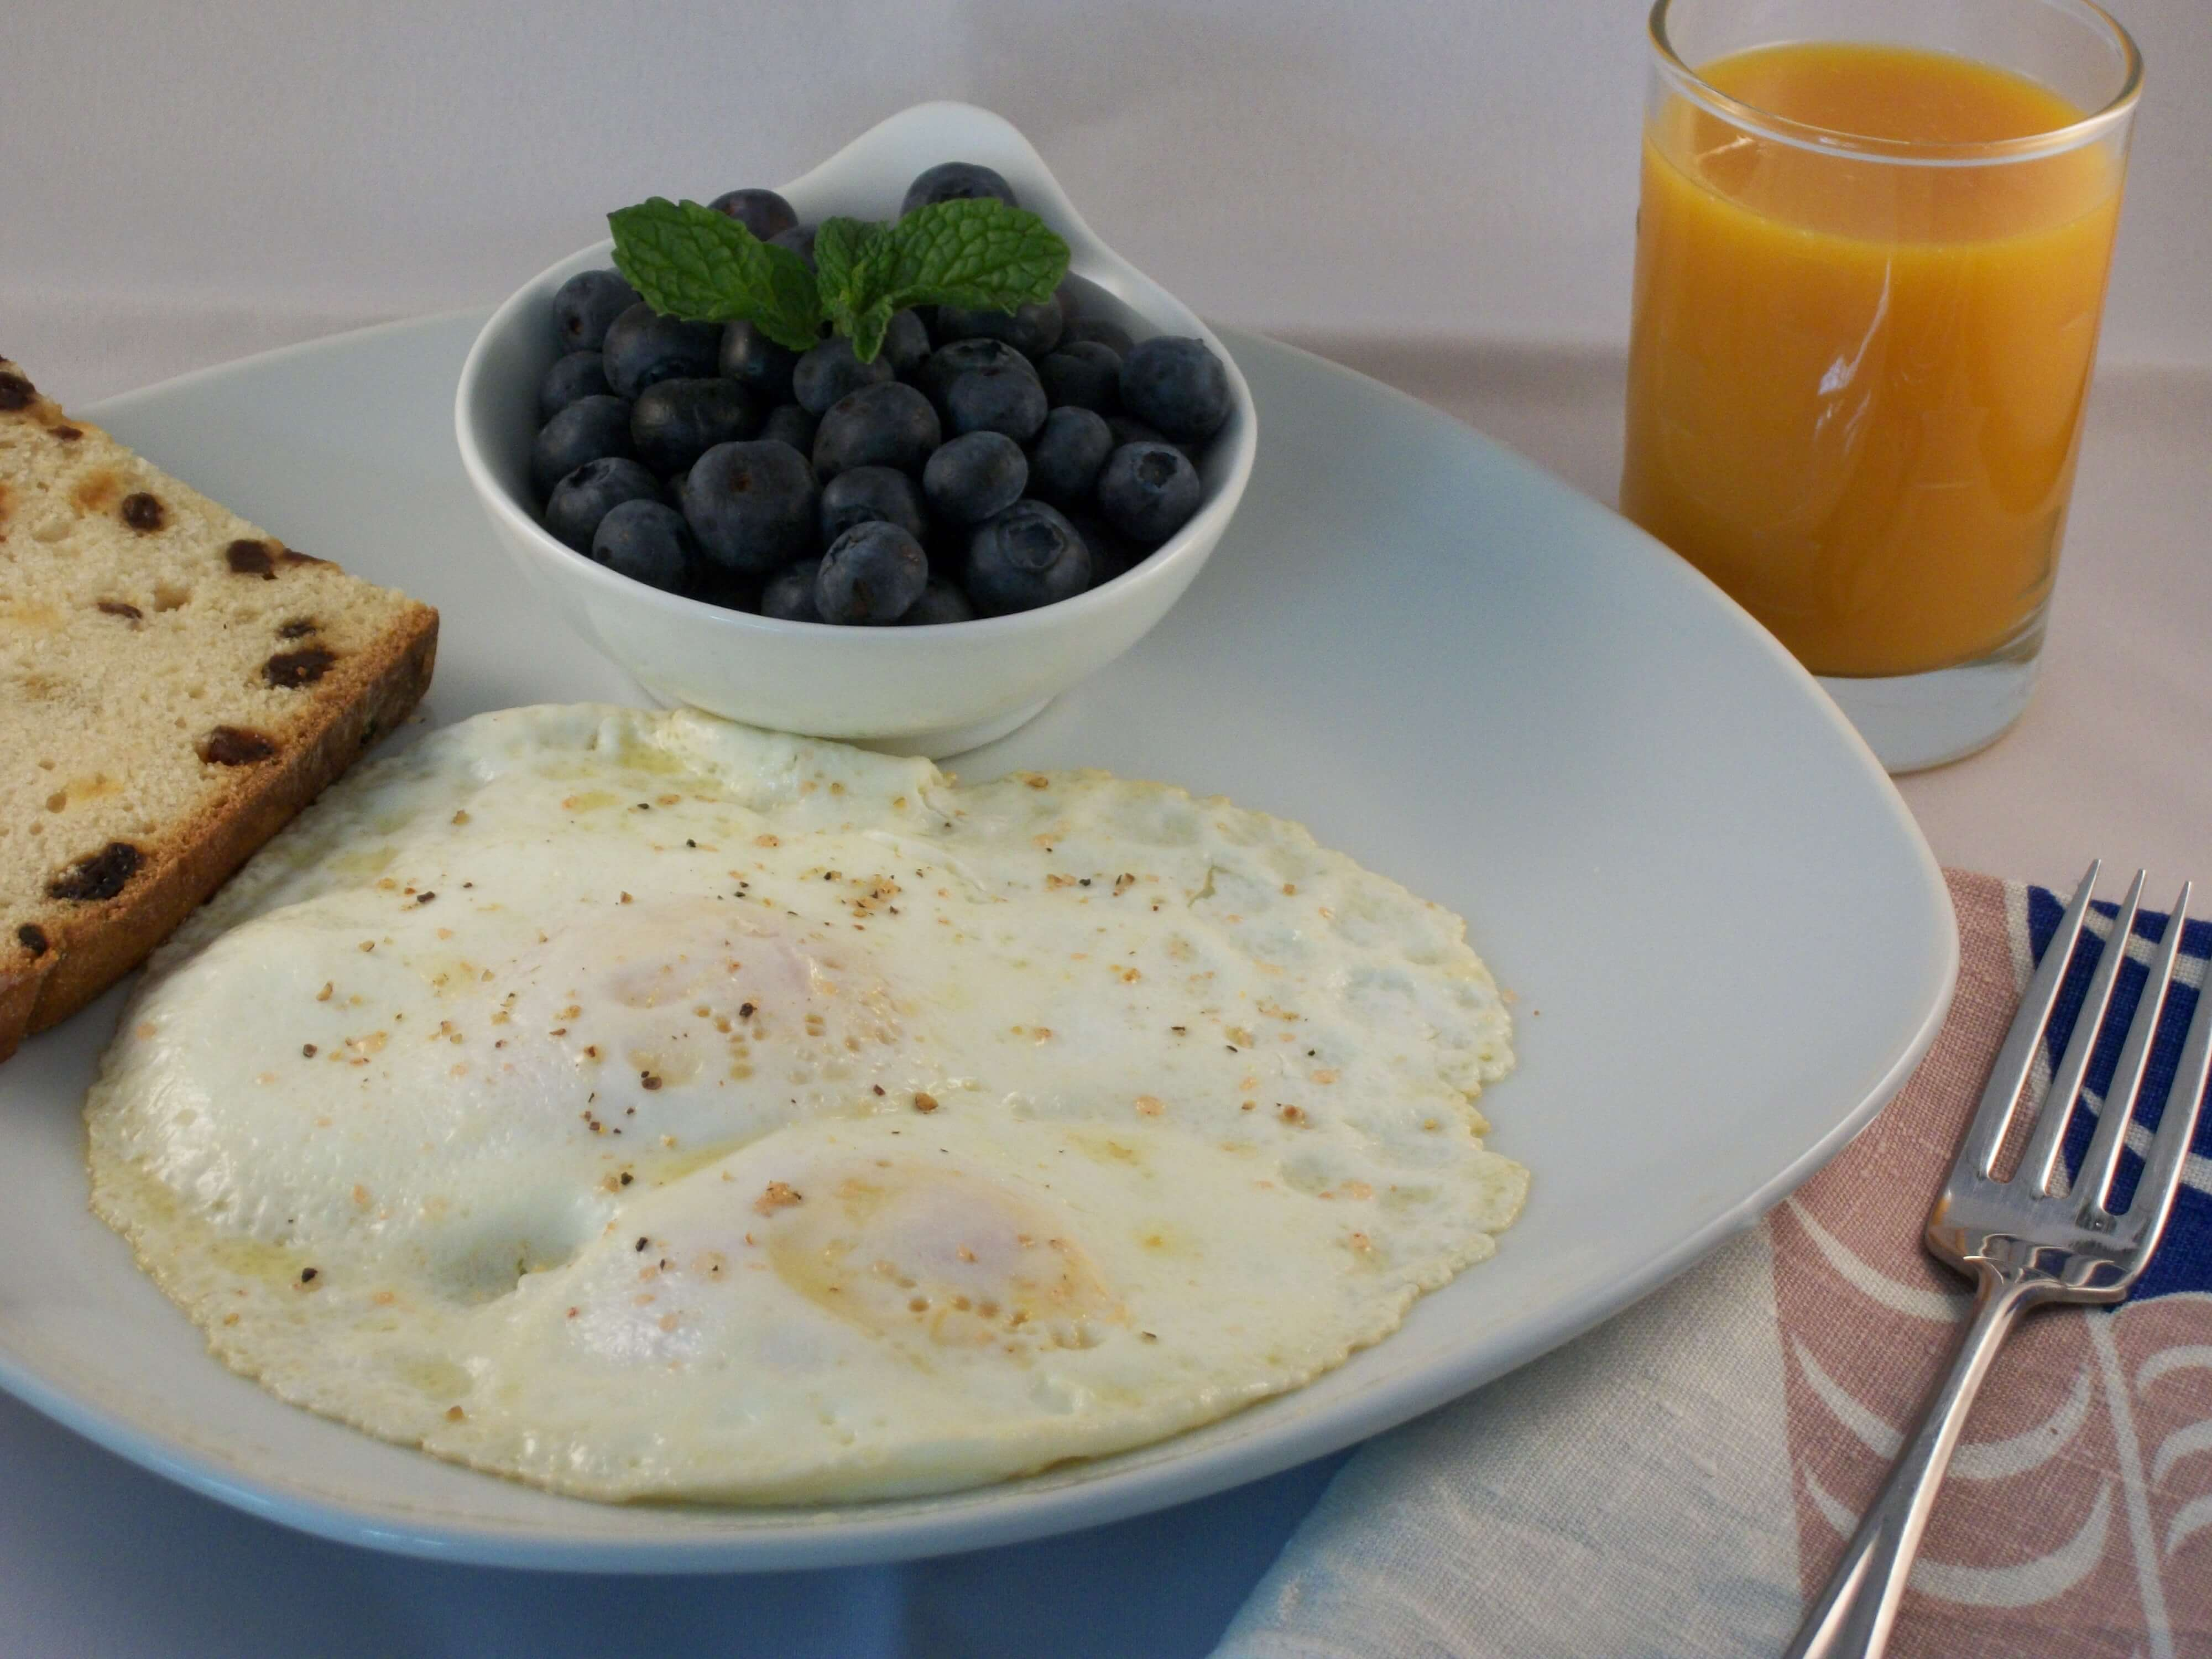 Eggs: The Essential Healthy Food